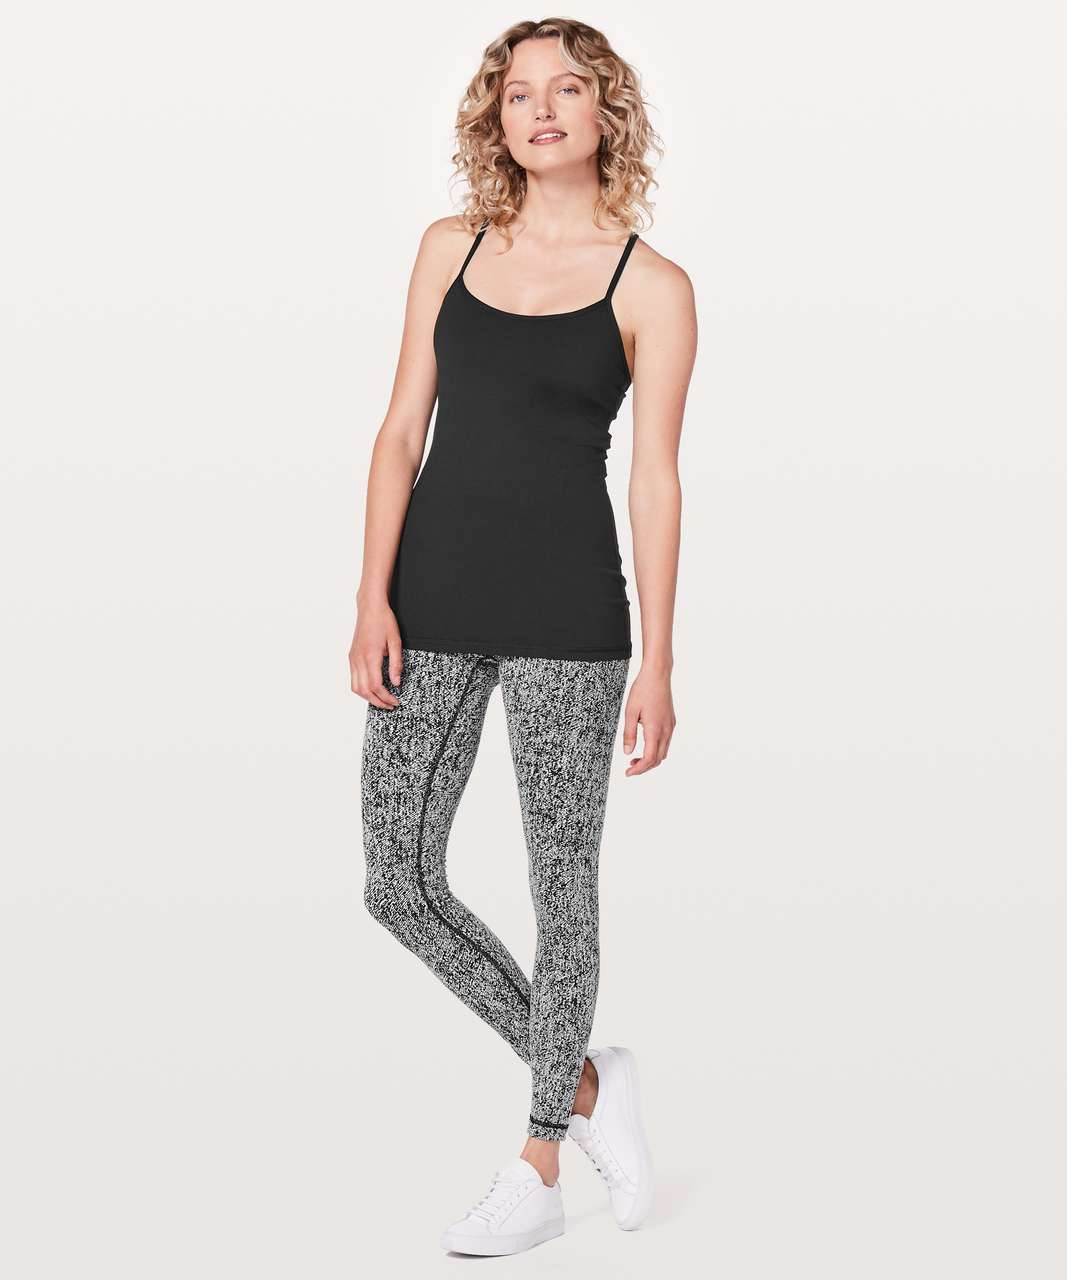 Lululemon Power Y Tank *Luon - Black (Third Release)